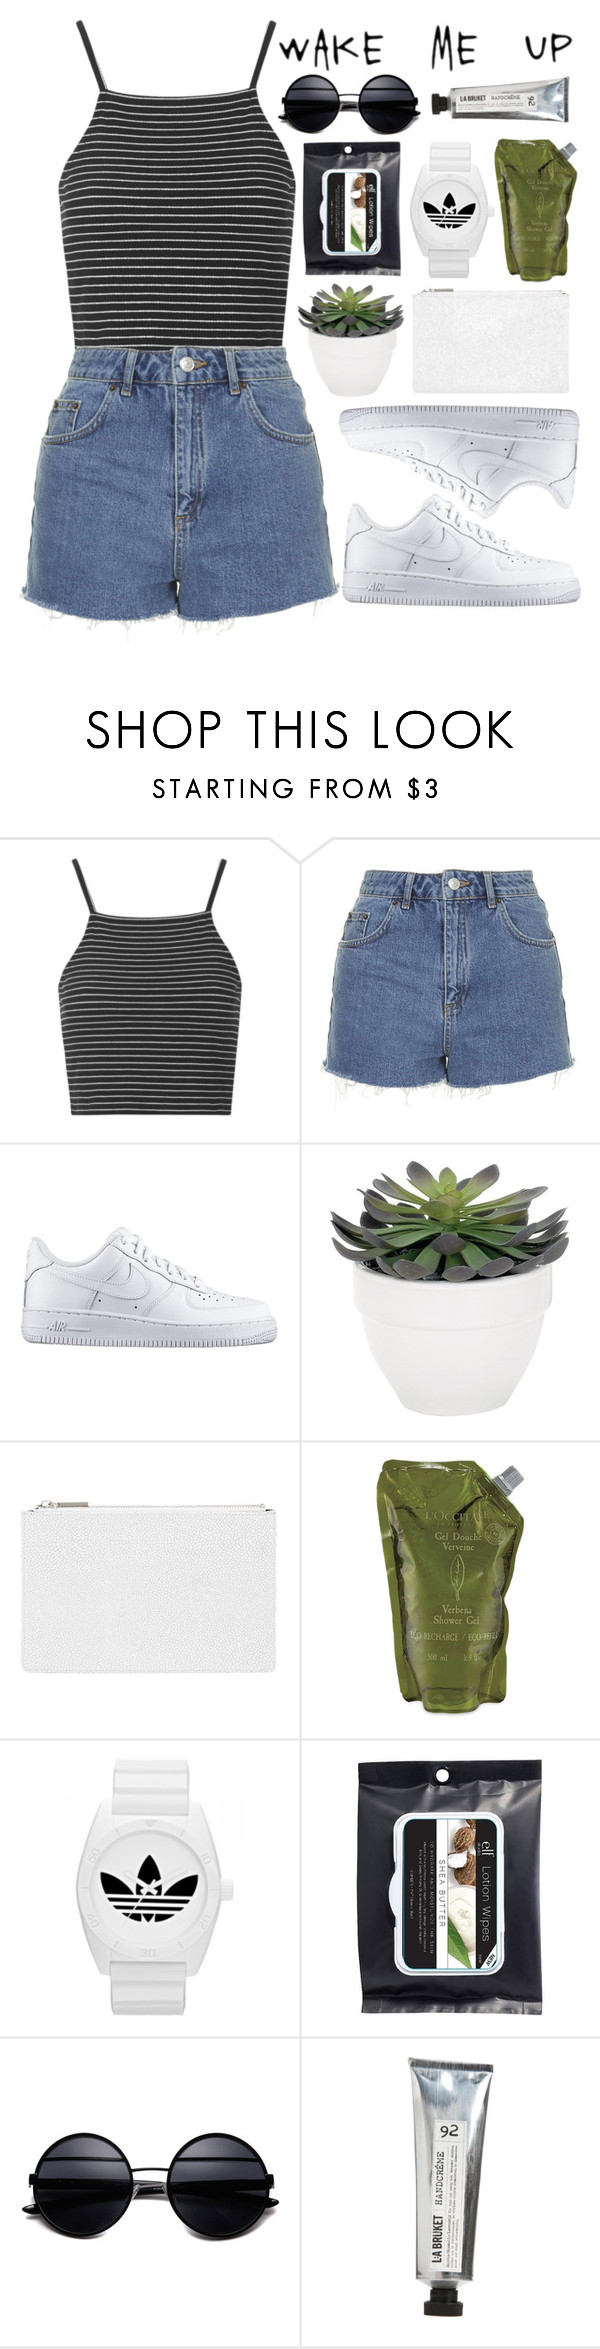 """""""#480 Summer"""" by mia5056 ❤ liked on Polyvore featuring Topshop, NIKE, Torre & Tagus, Whistles, L'Occitane, adidas and L:A Bruket"""